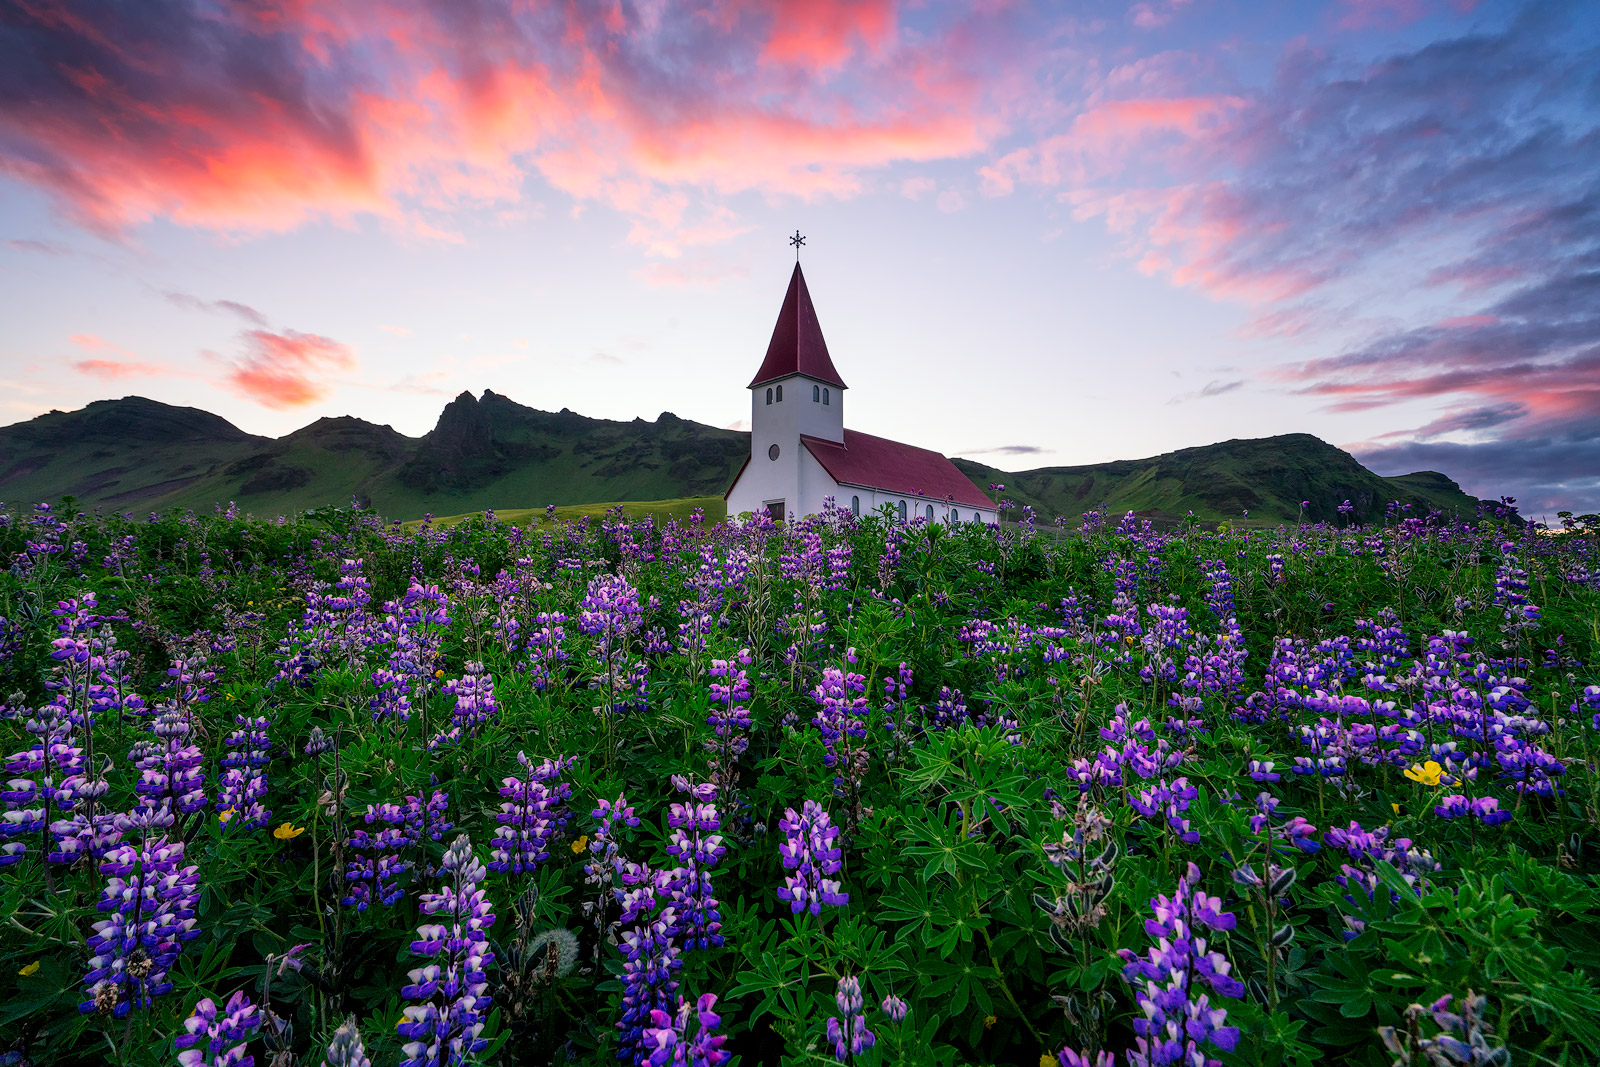 Vik i Myrdal Church, Iceland, Lupines, Sunrise, Flowers, Church, Bernard Chen, photo